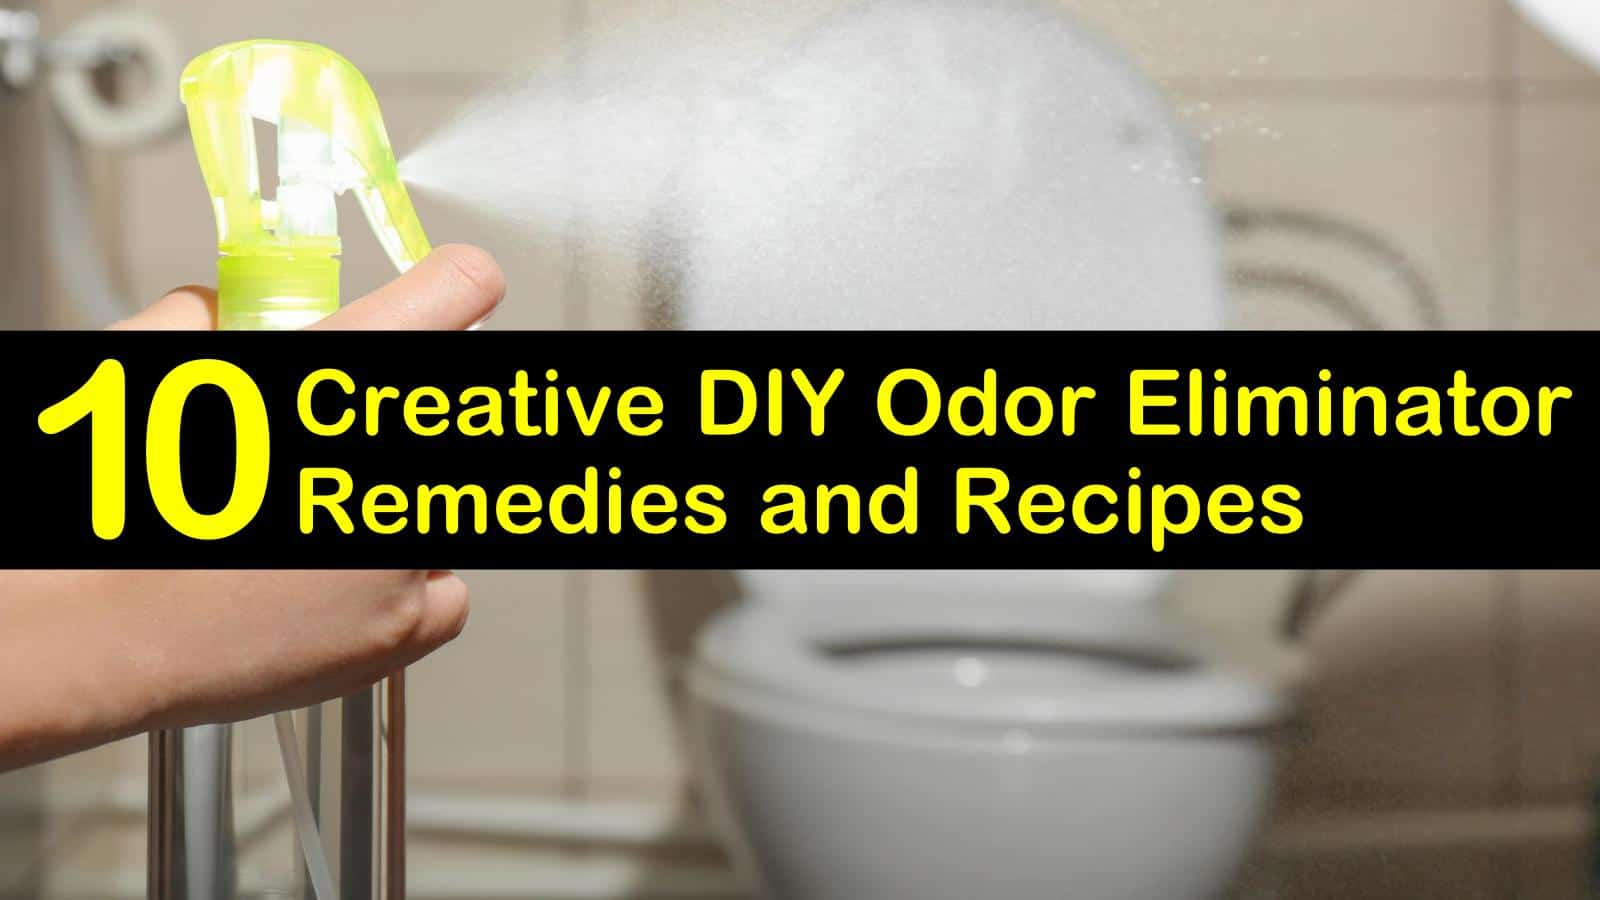 DIY odor eliminator titleimg1